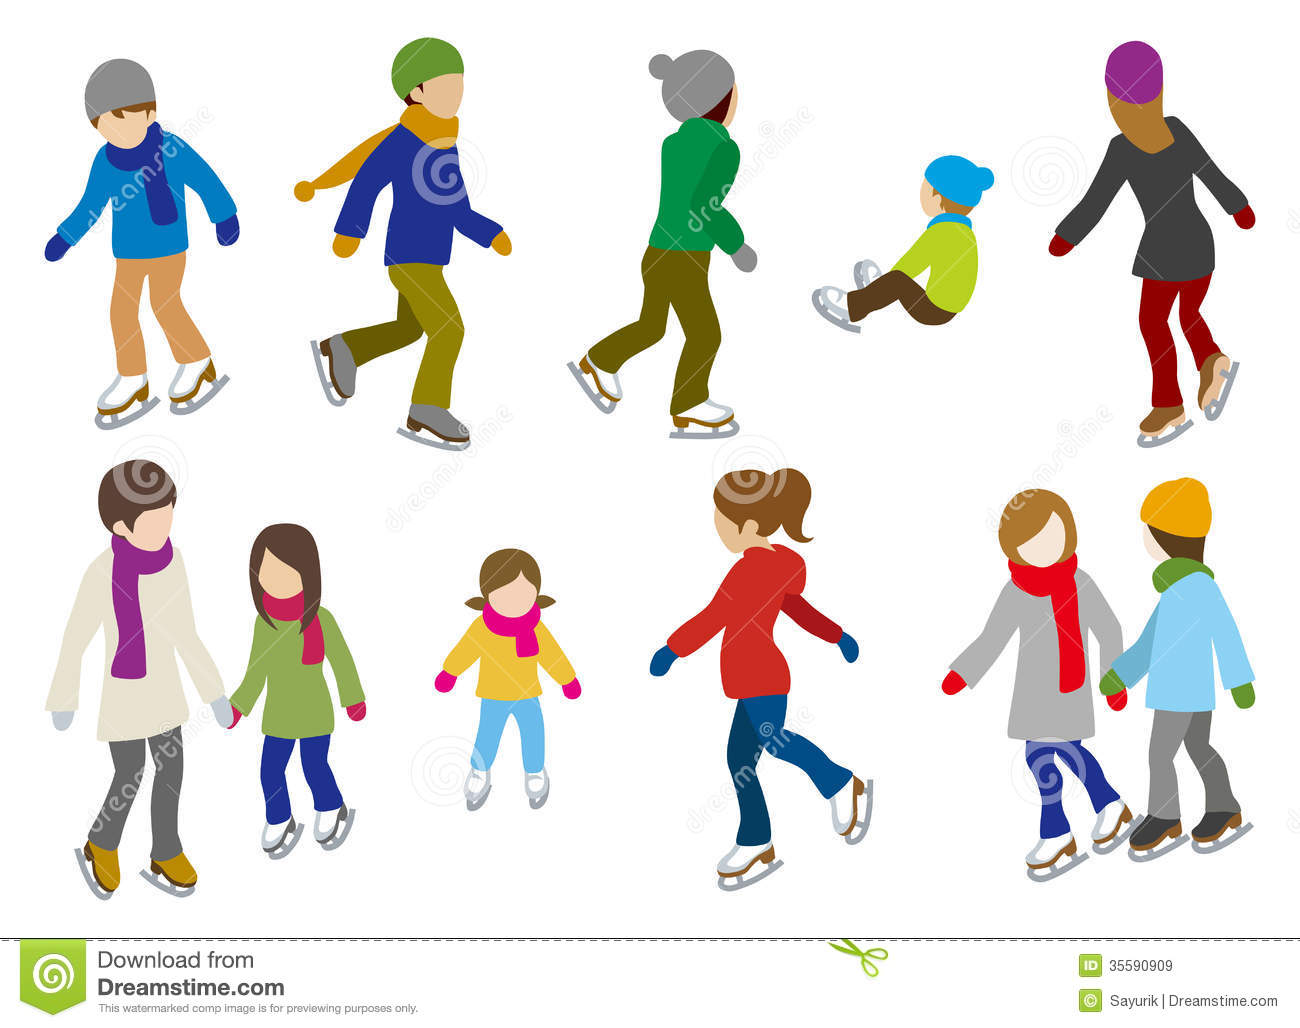 People Ice Skating Clipart.